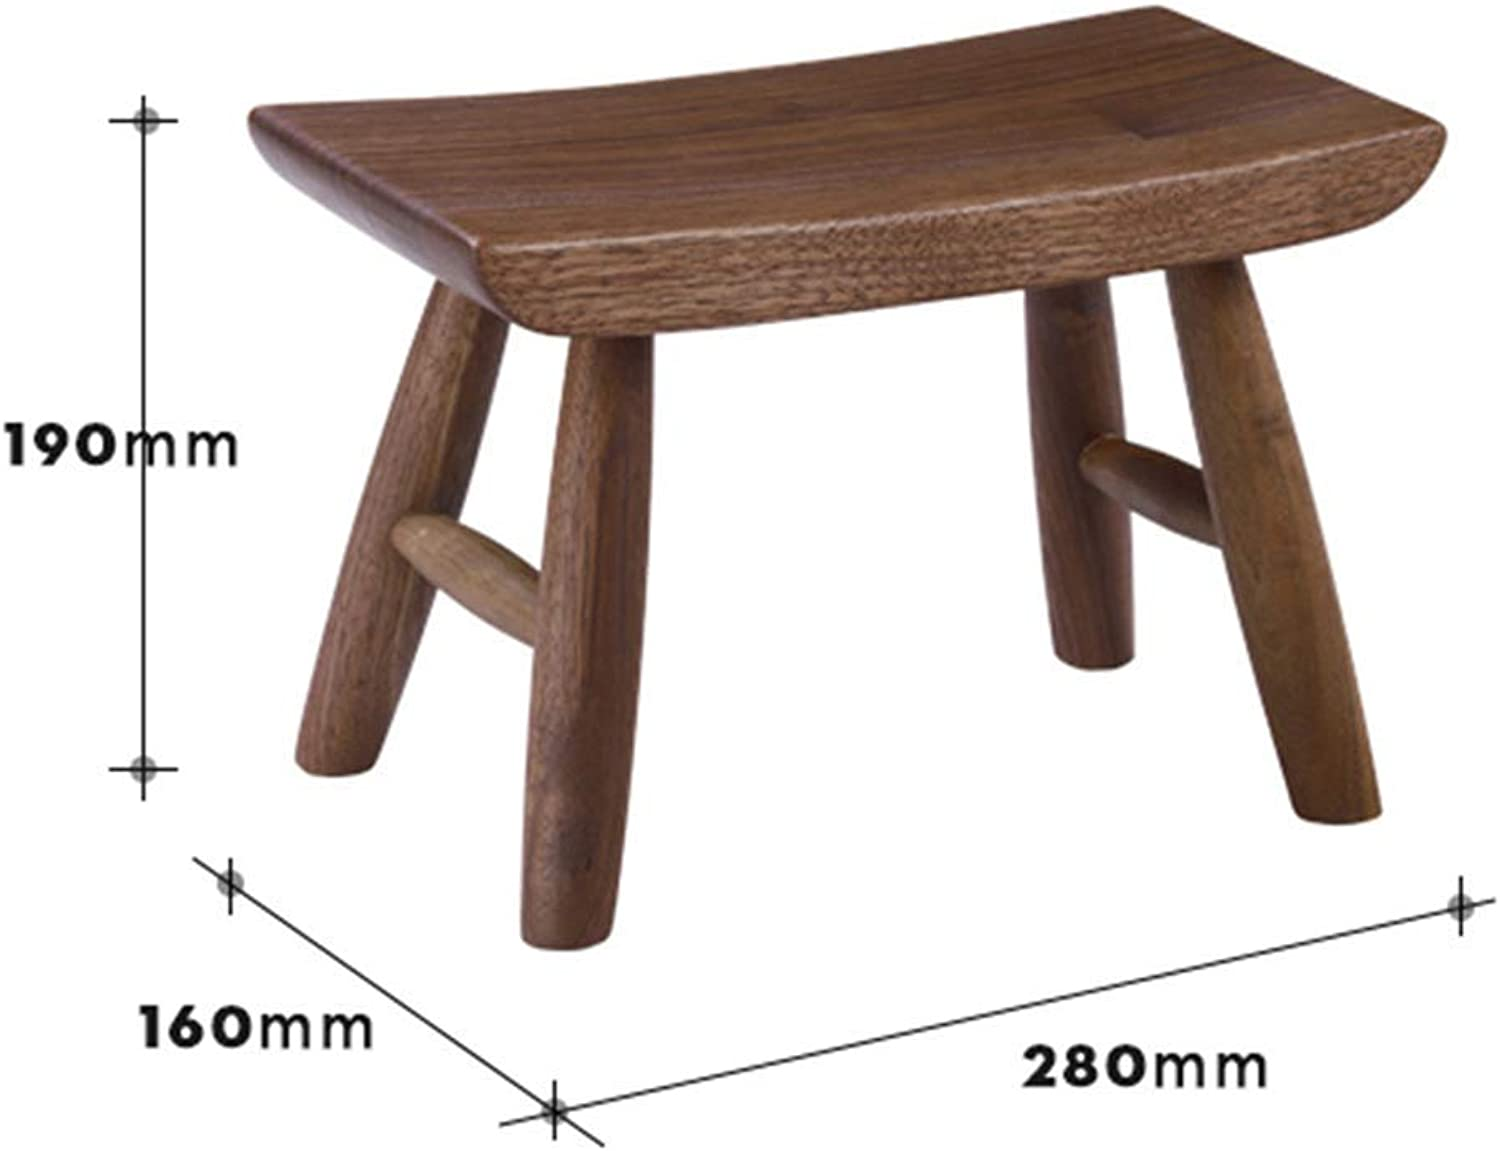 JZX Simple shoes Bench, Solid Wood Low Stool, Home Sofa Bench, Multi-Function Stool